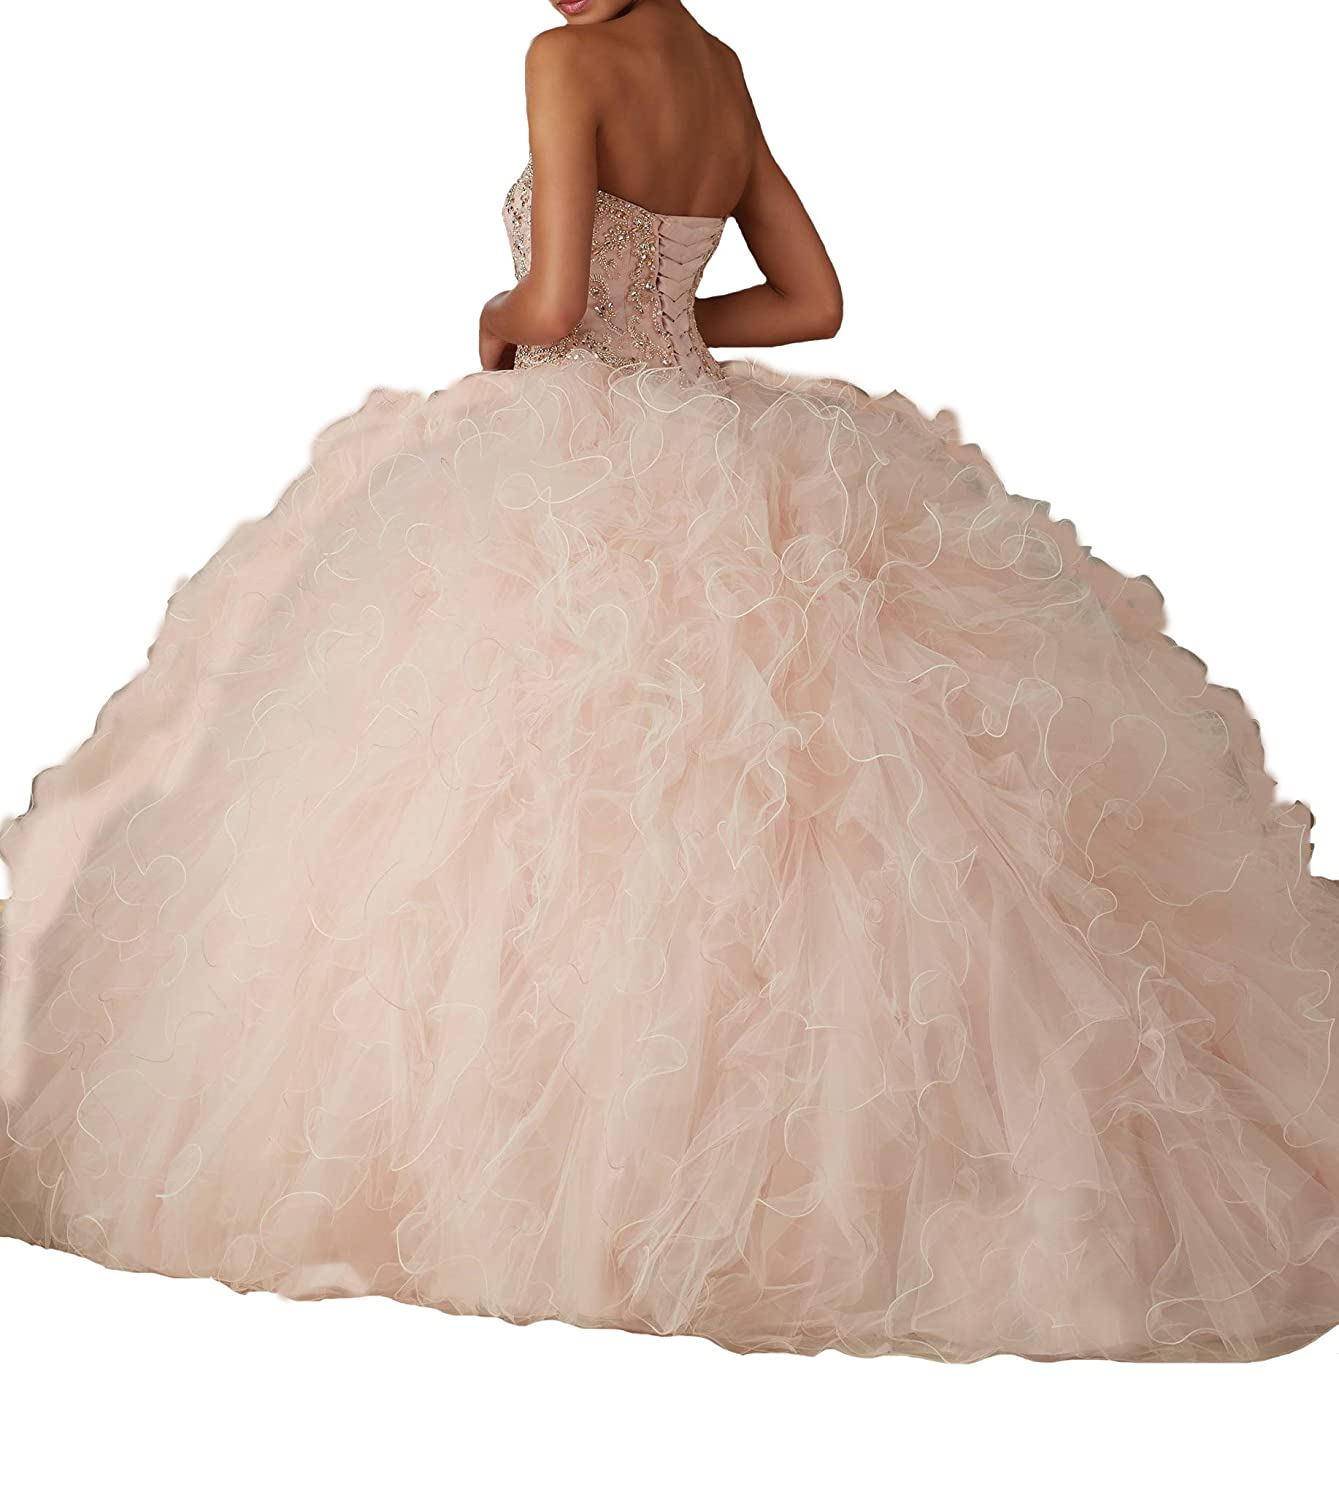 becccebb72 HuaMao Women s with Jacket Beads Sweet 16 Long Quinceanera Dresses at Amazon  Women s Clothing store